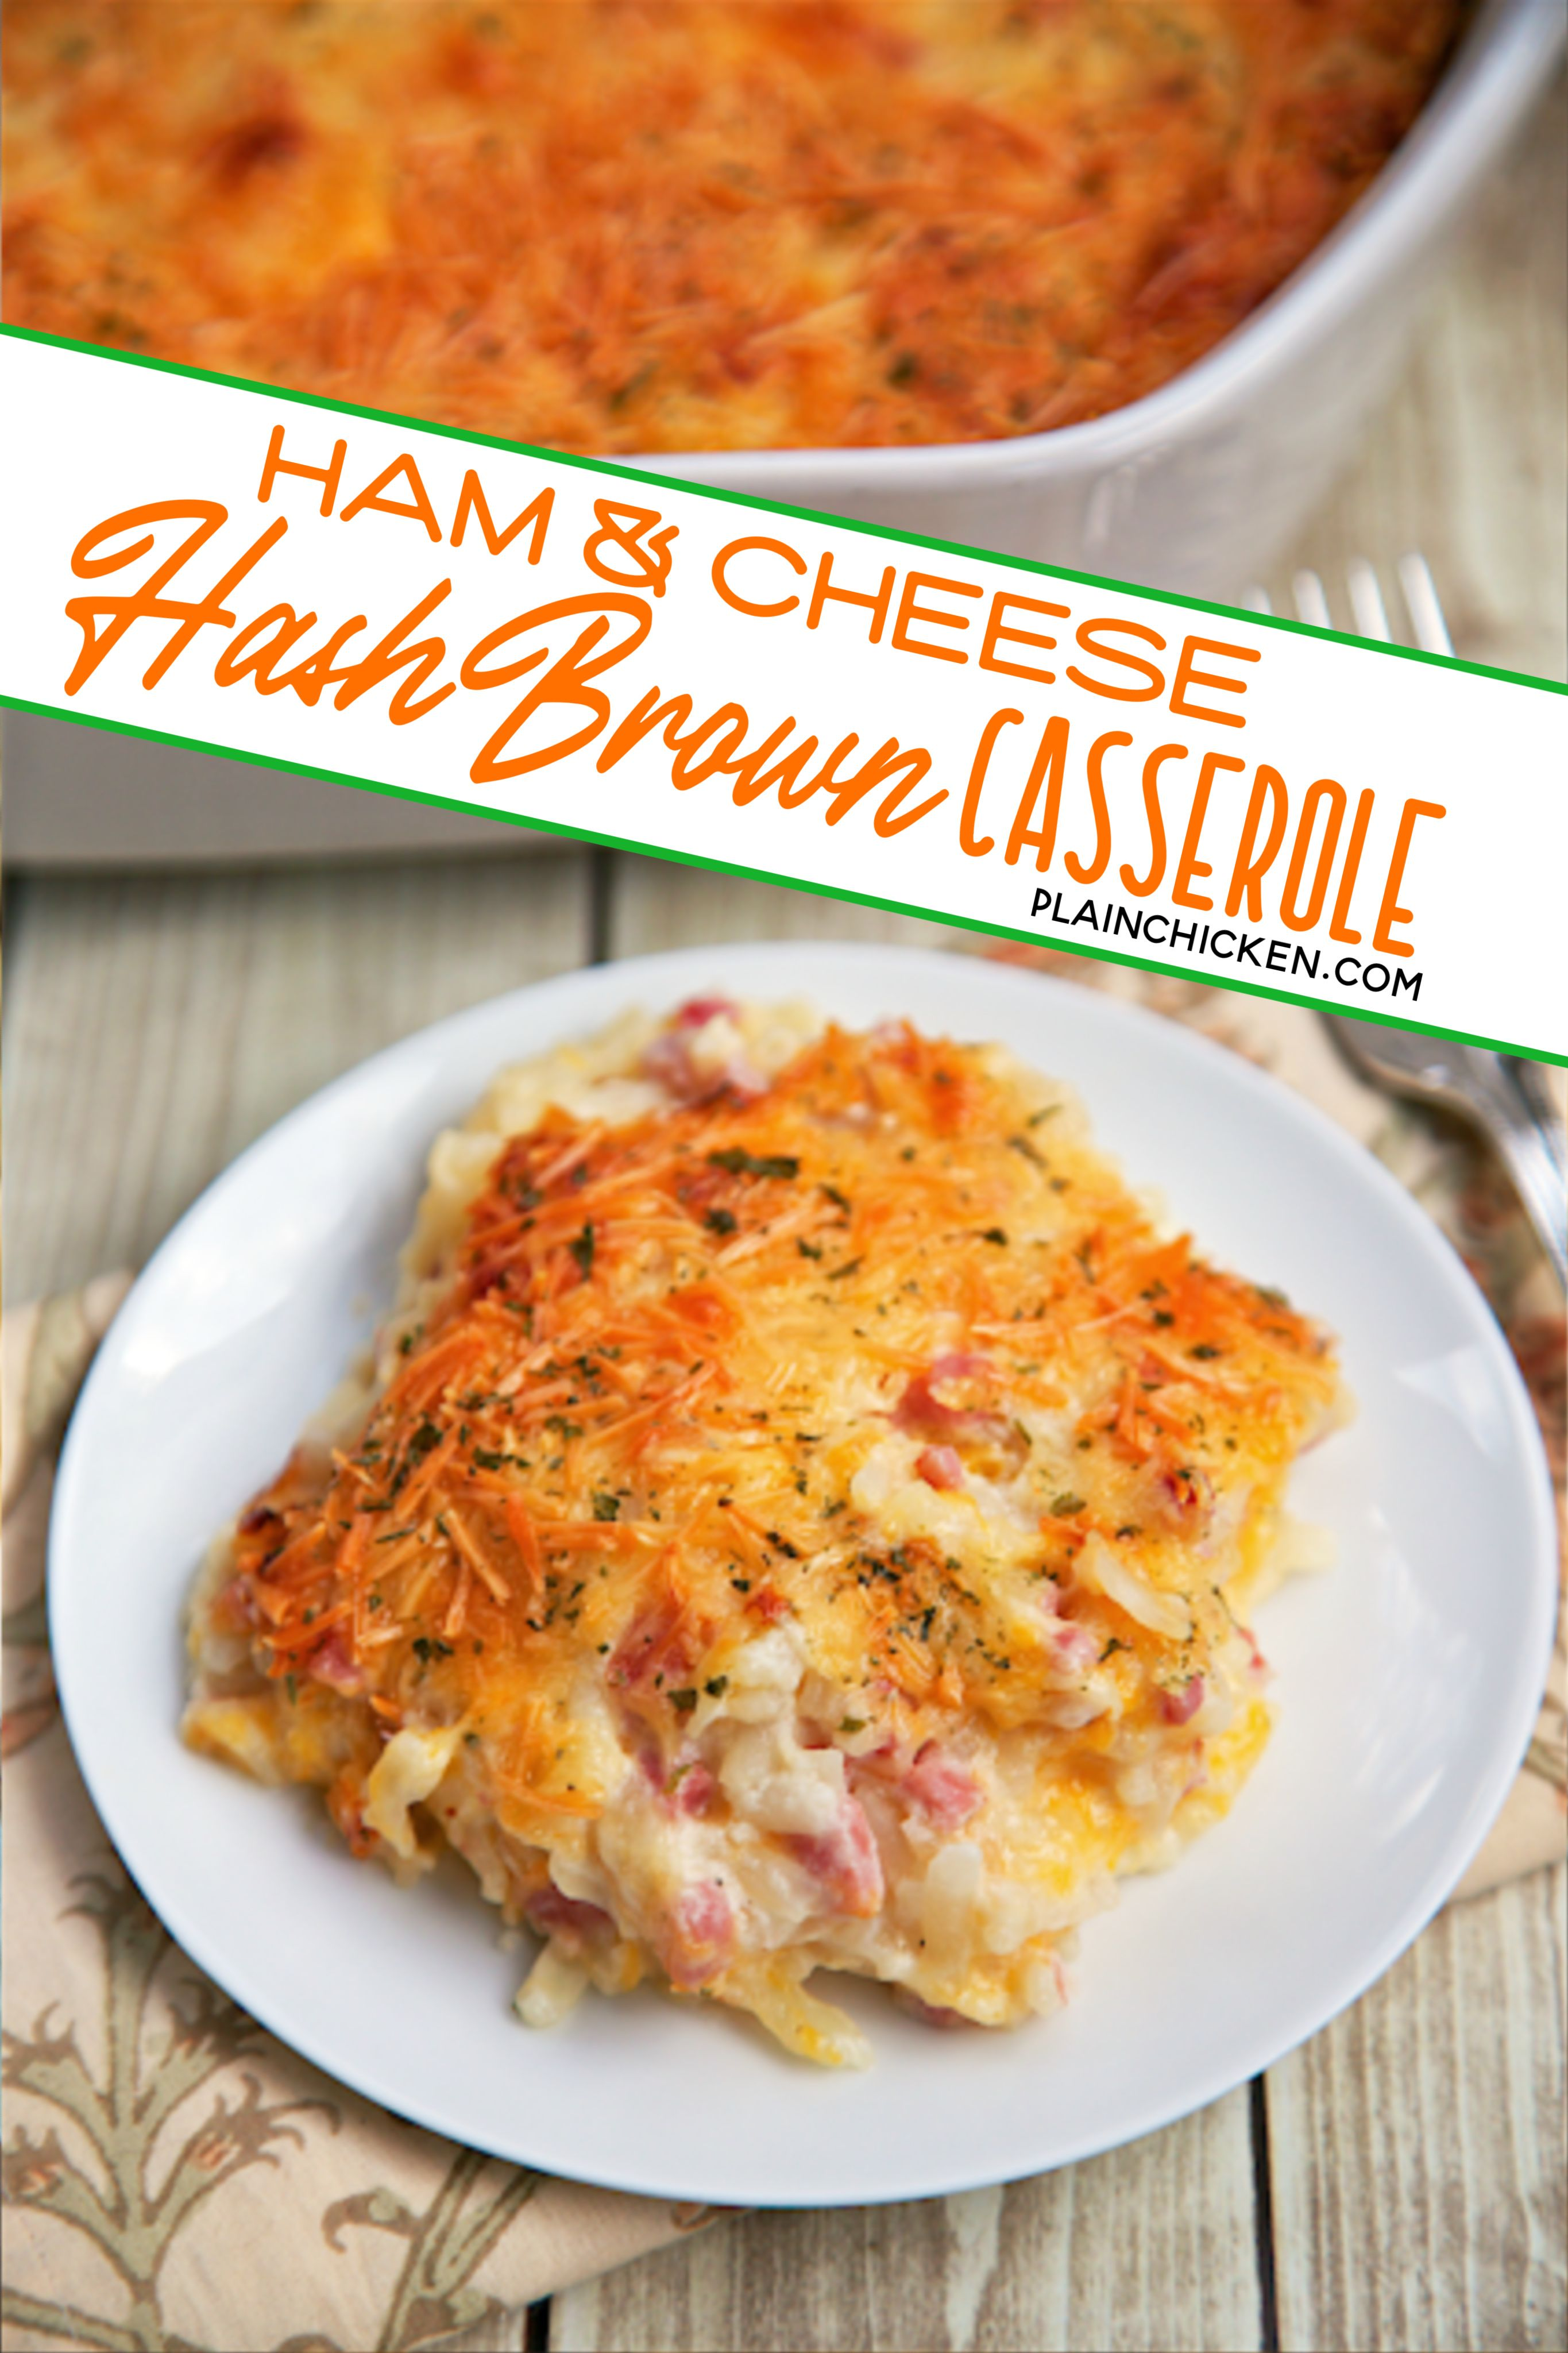 Ham And Cheese Hash Brown Casserole In 2020 Ham And Cheese Ham And Hashbrown Casserole Ham Casserole Recipes